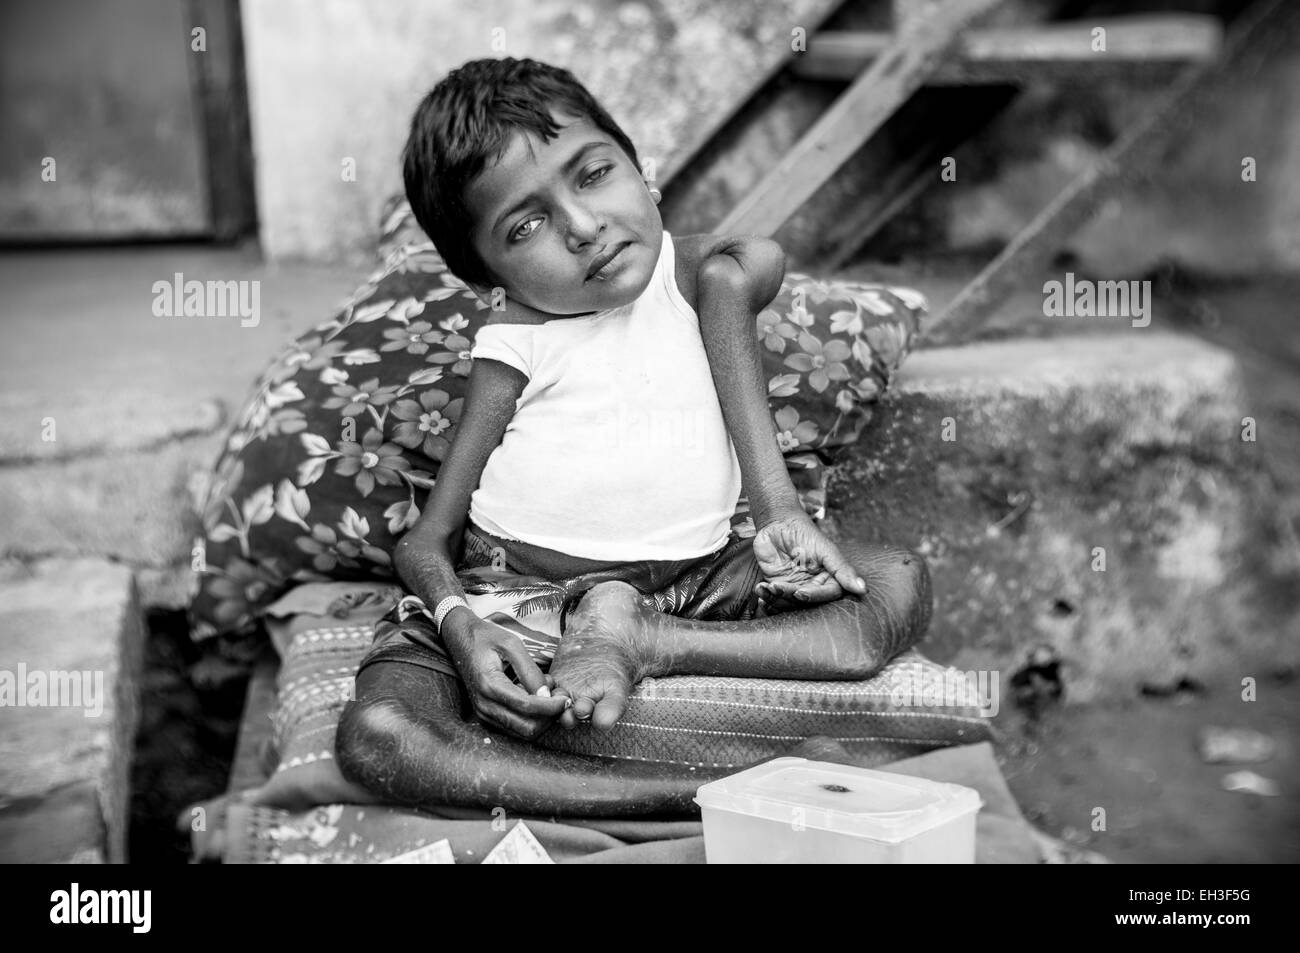 A small homeless girl, severely disabled, begging for money in rural India. - Stock Image